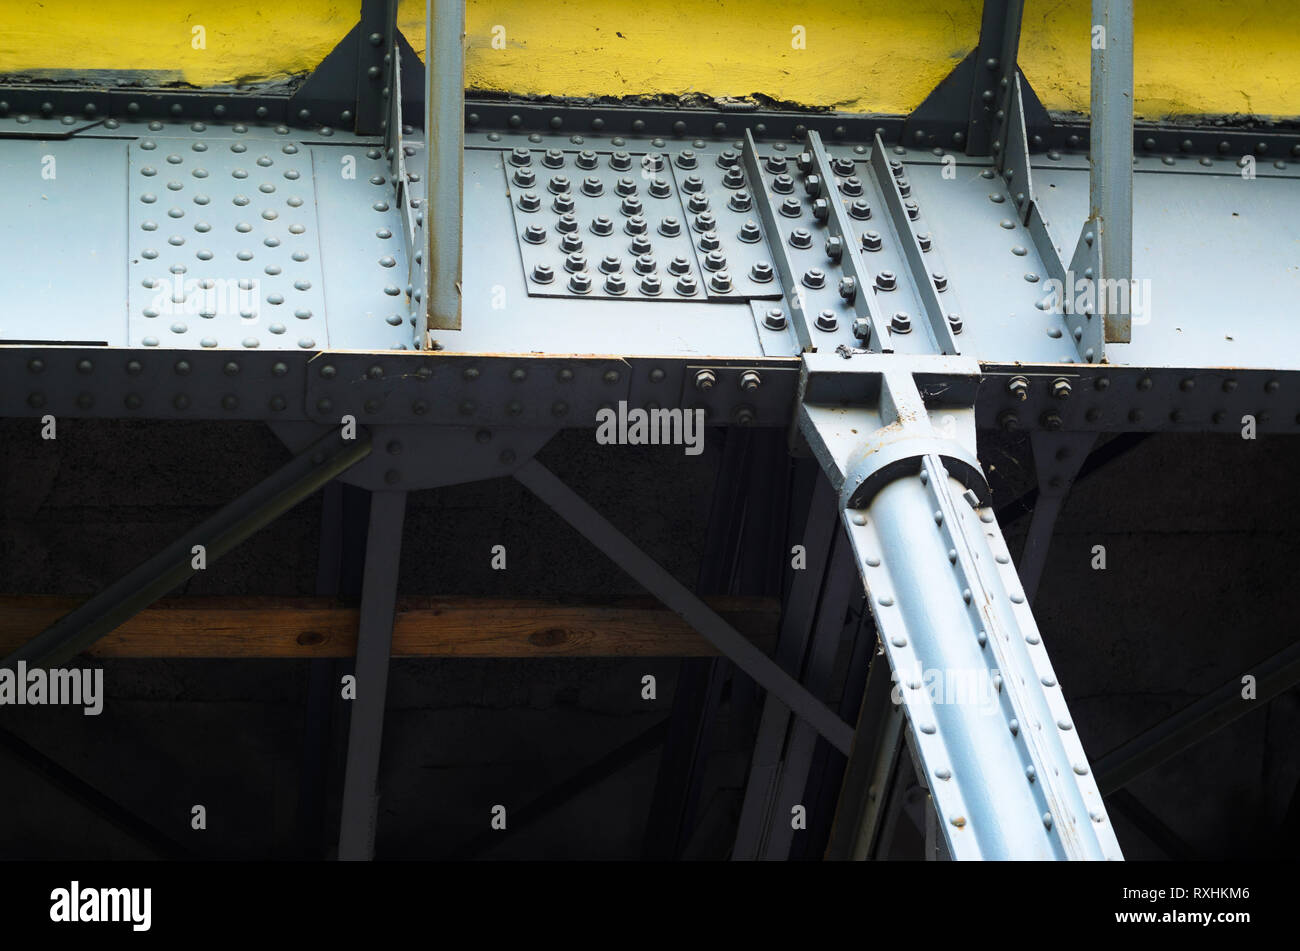 Steel Structure of the Bridge on Bolted and Riveted Joints - Stock Image